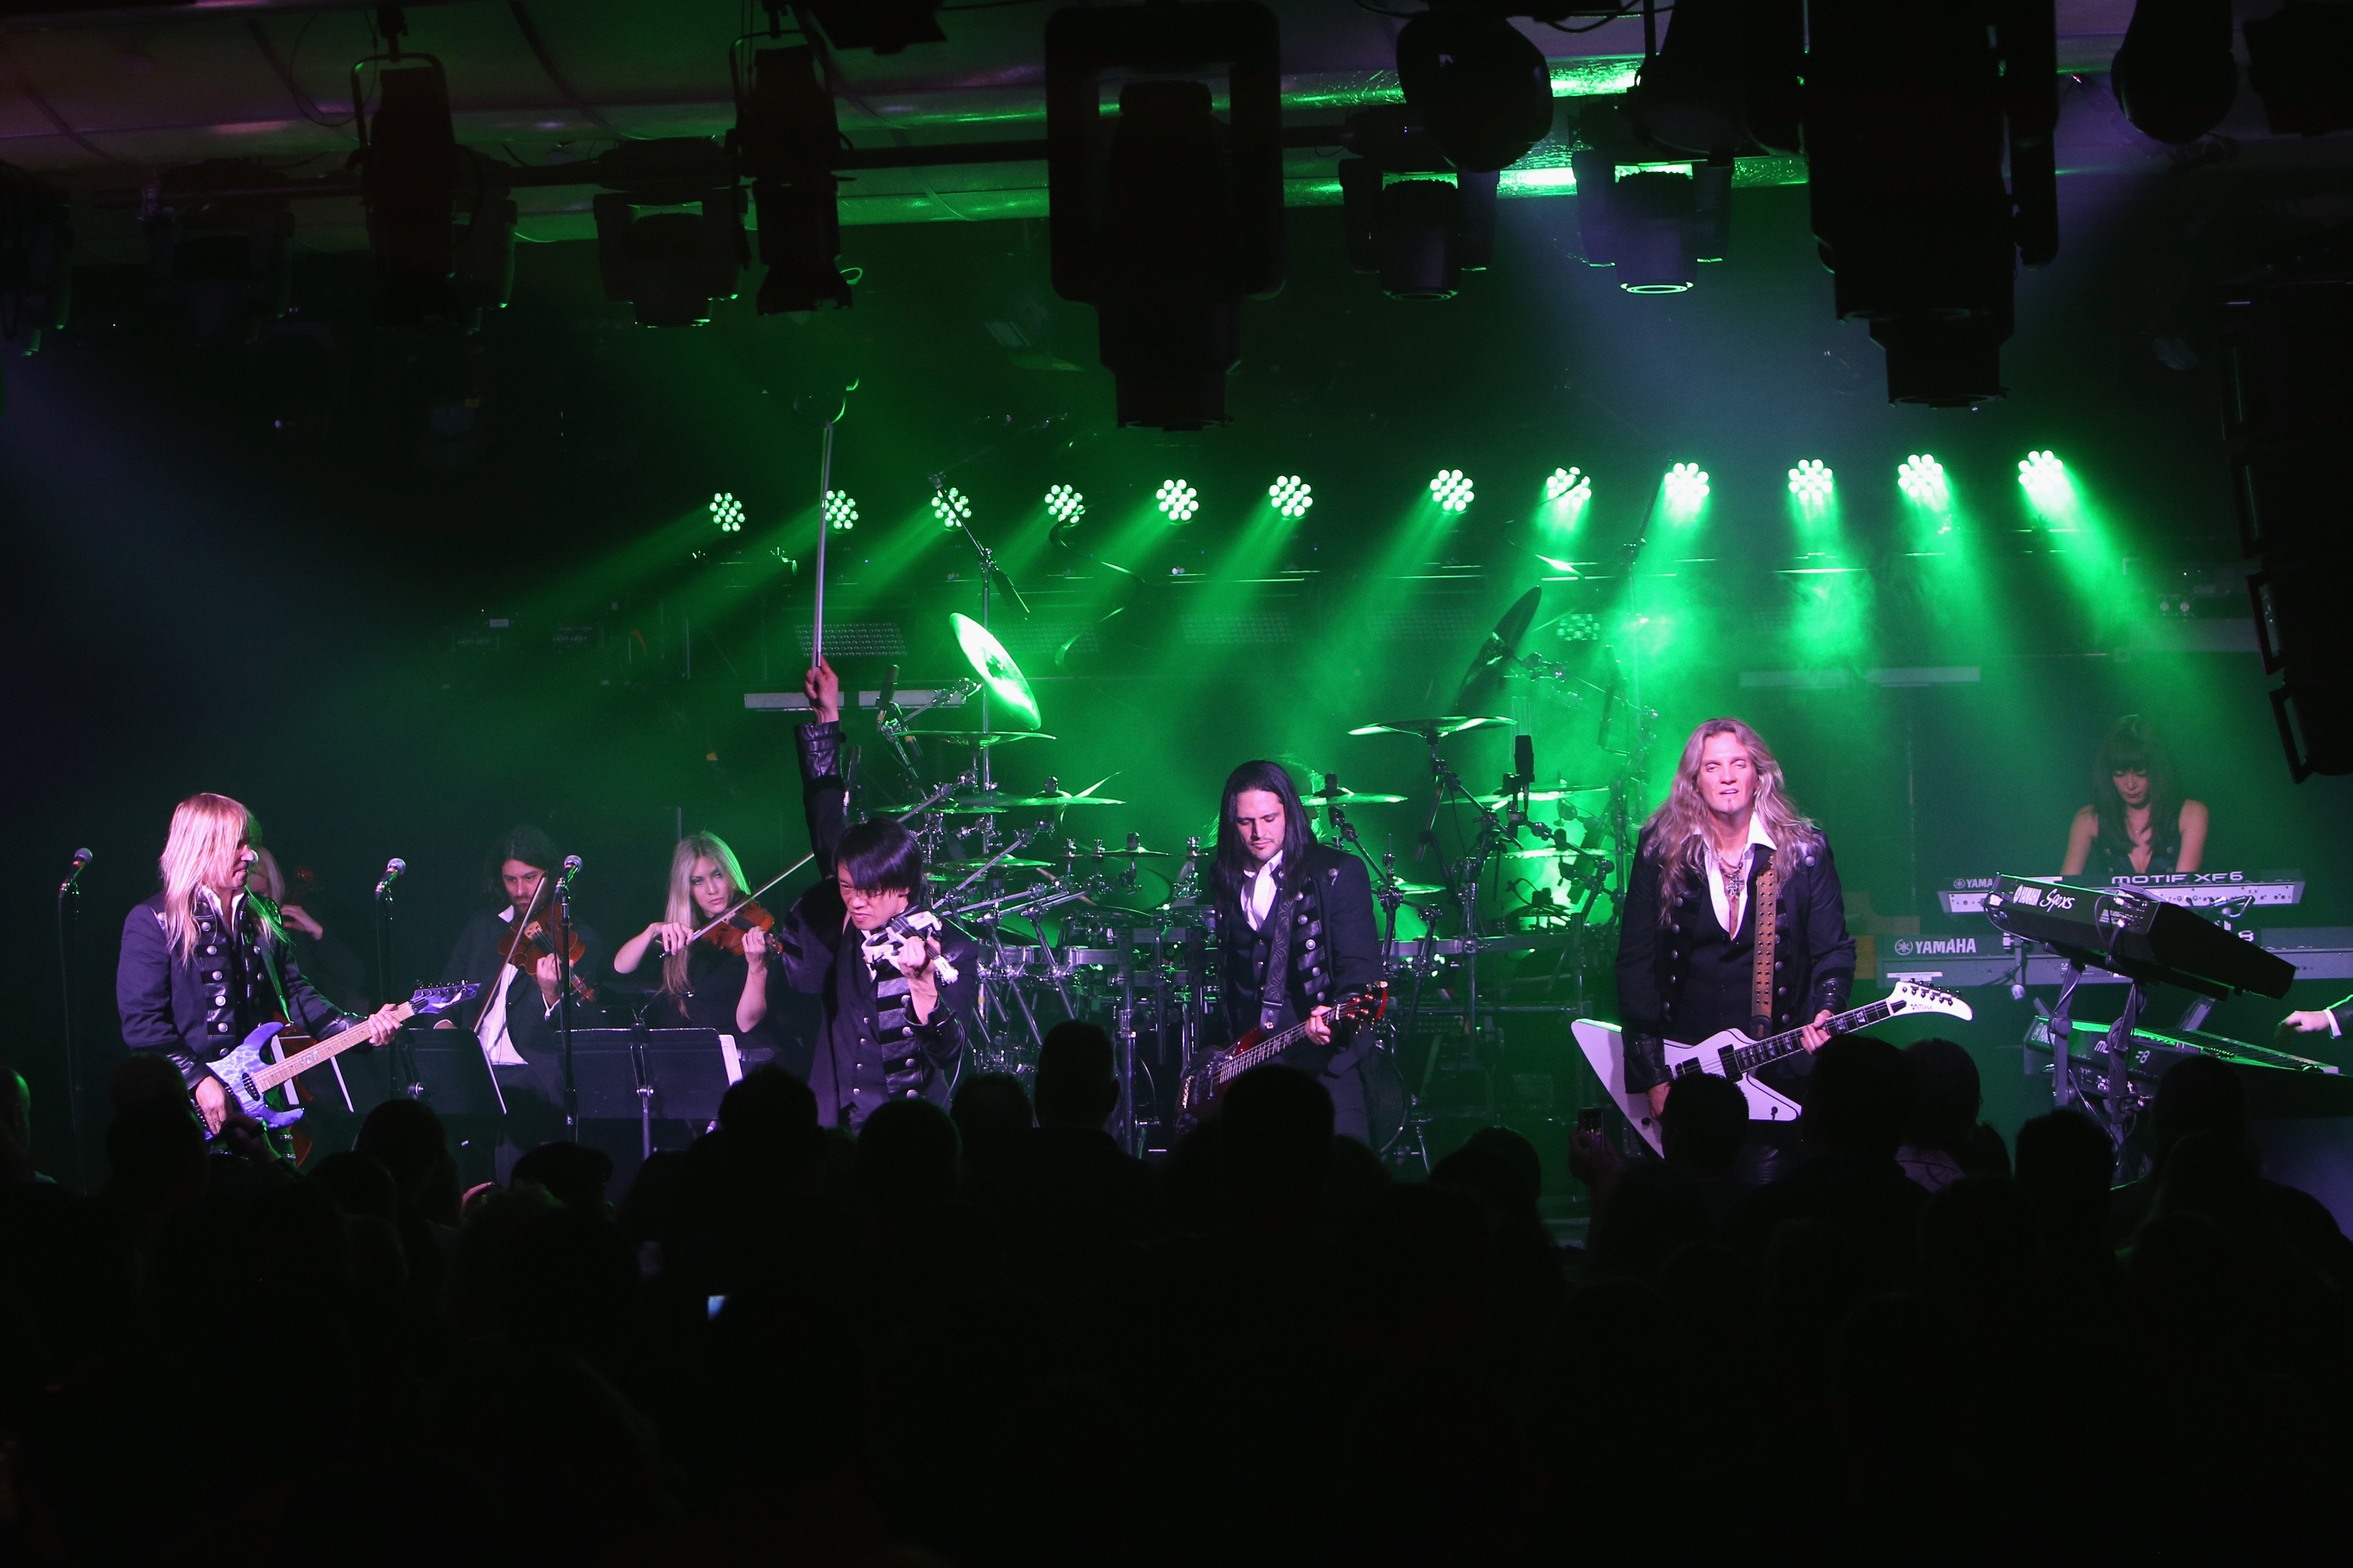 Chris Caffery (from left), Roddy Chong, David Z and Joel Hoekstra of Trans-Siberian Orchestra perform onstage at The iHeartRadio Theater in New York in 2014.